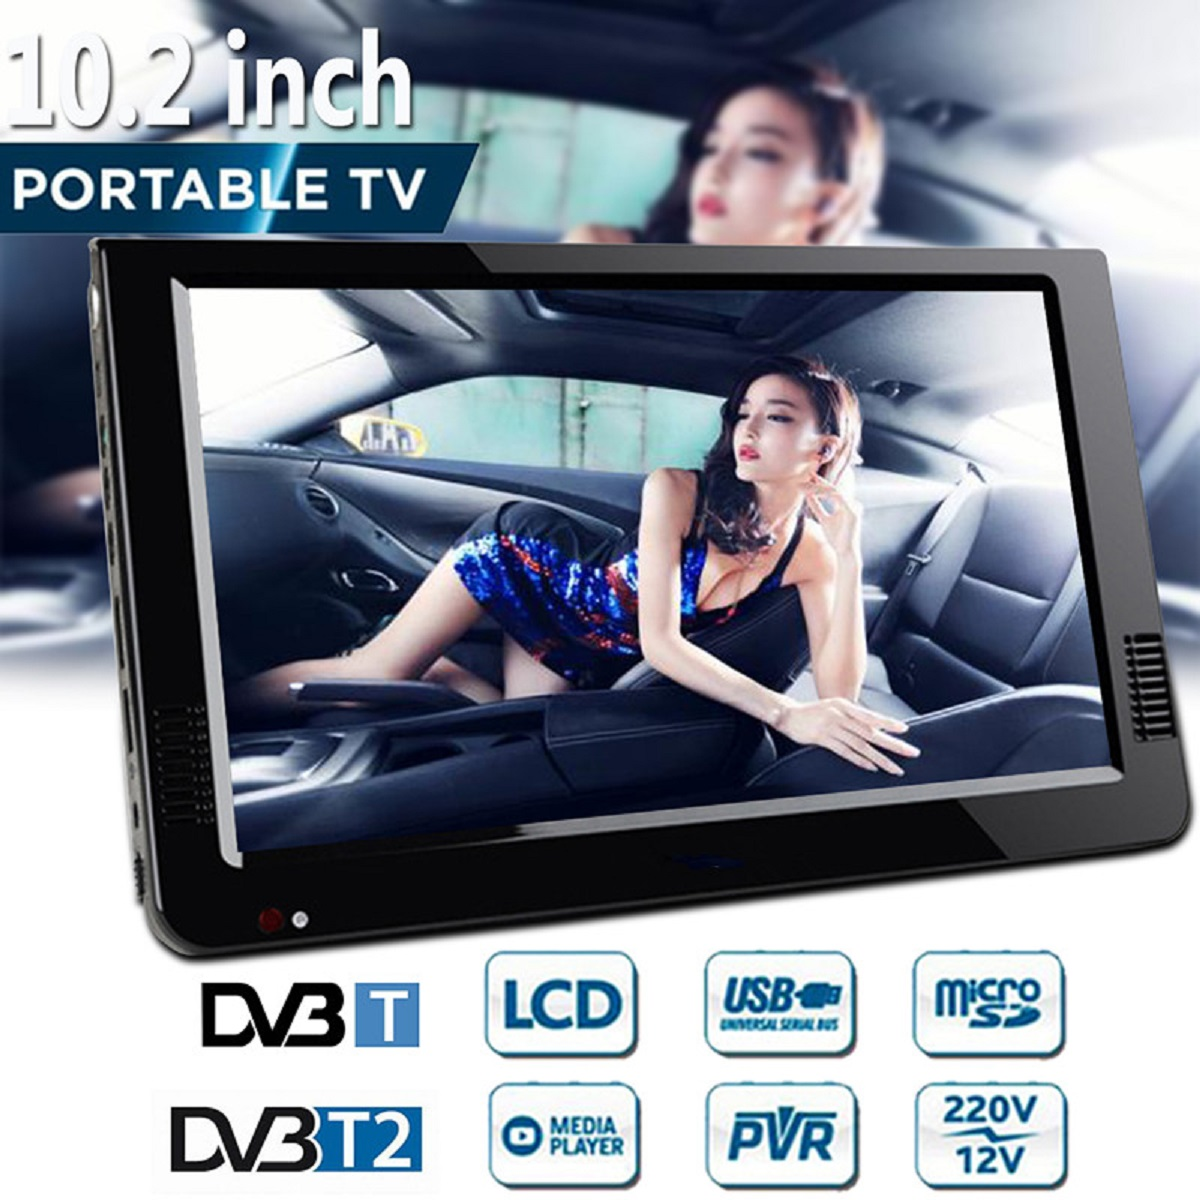 10.2 Inch 12V Portable Digital Analog Television DVB-T / DVB-T2 TFT LED HD TV Support TF Card USB Outdoor Audio Car Television image